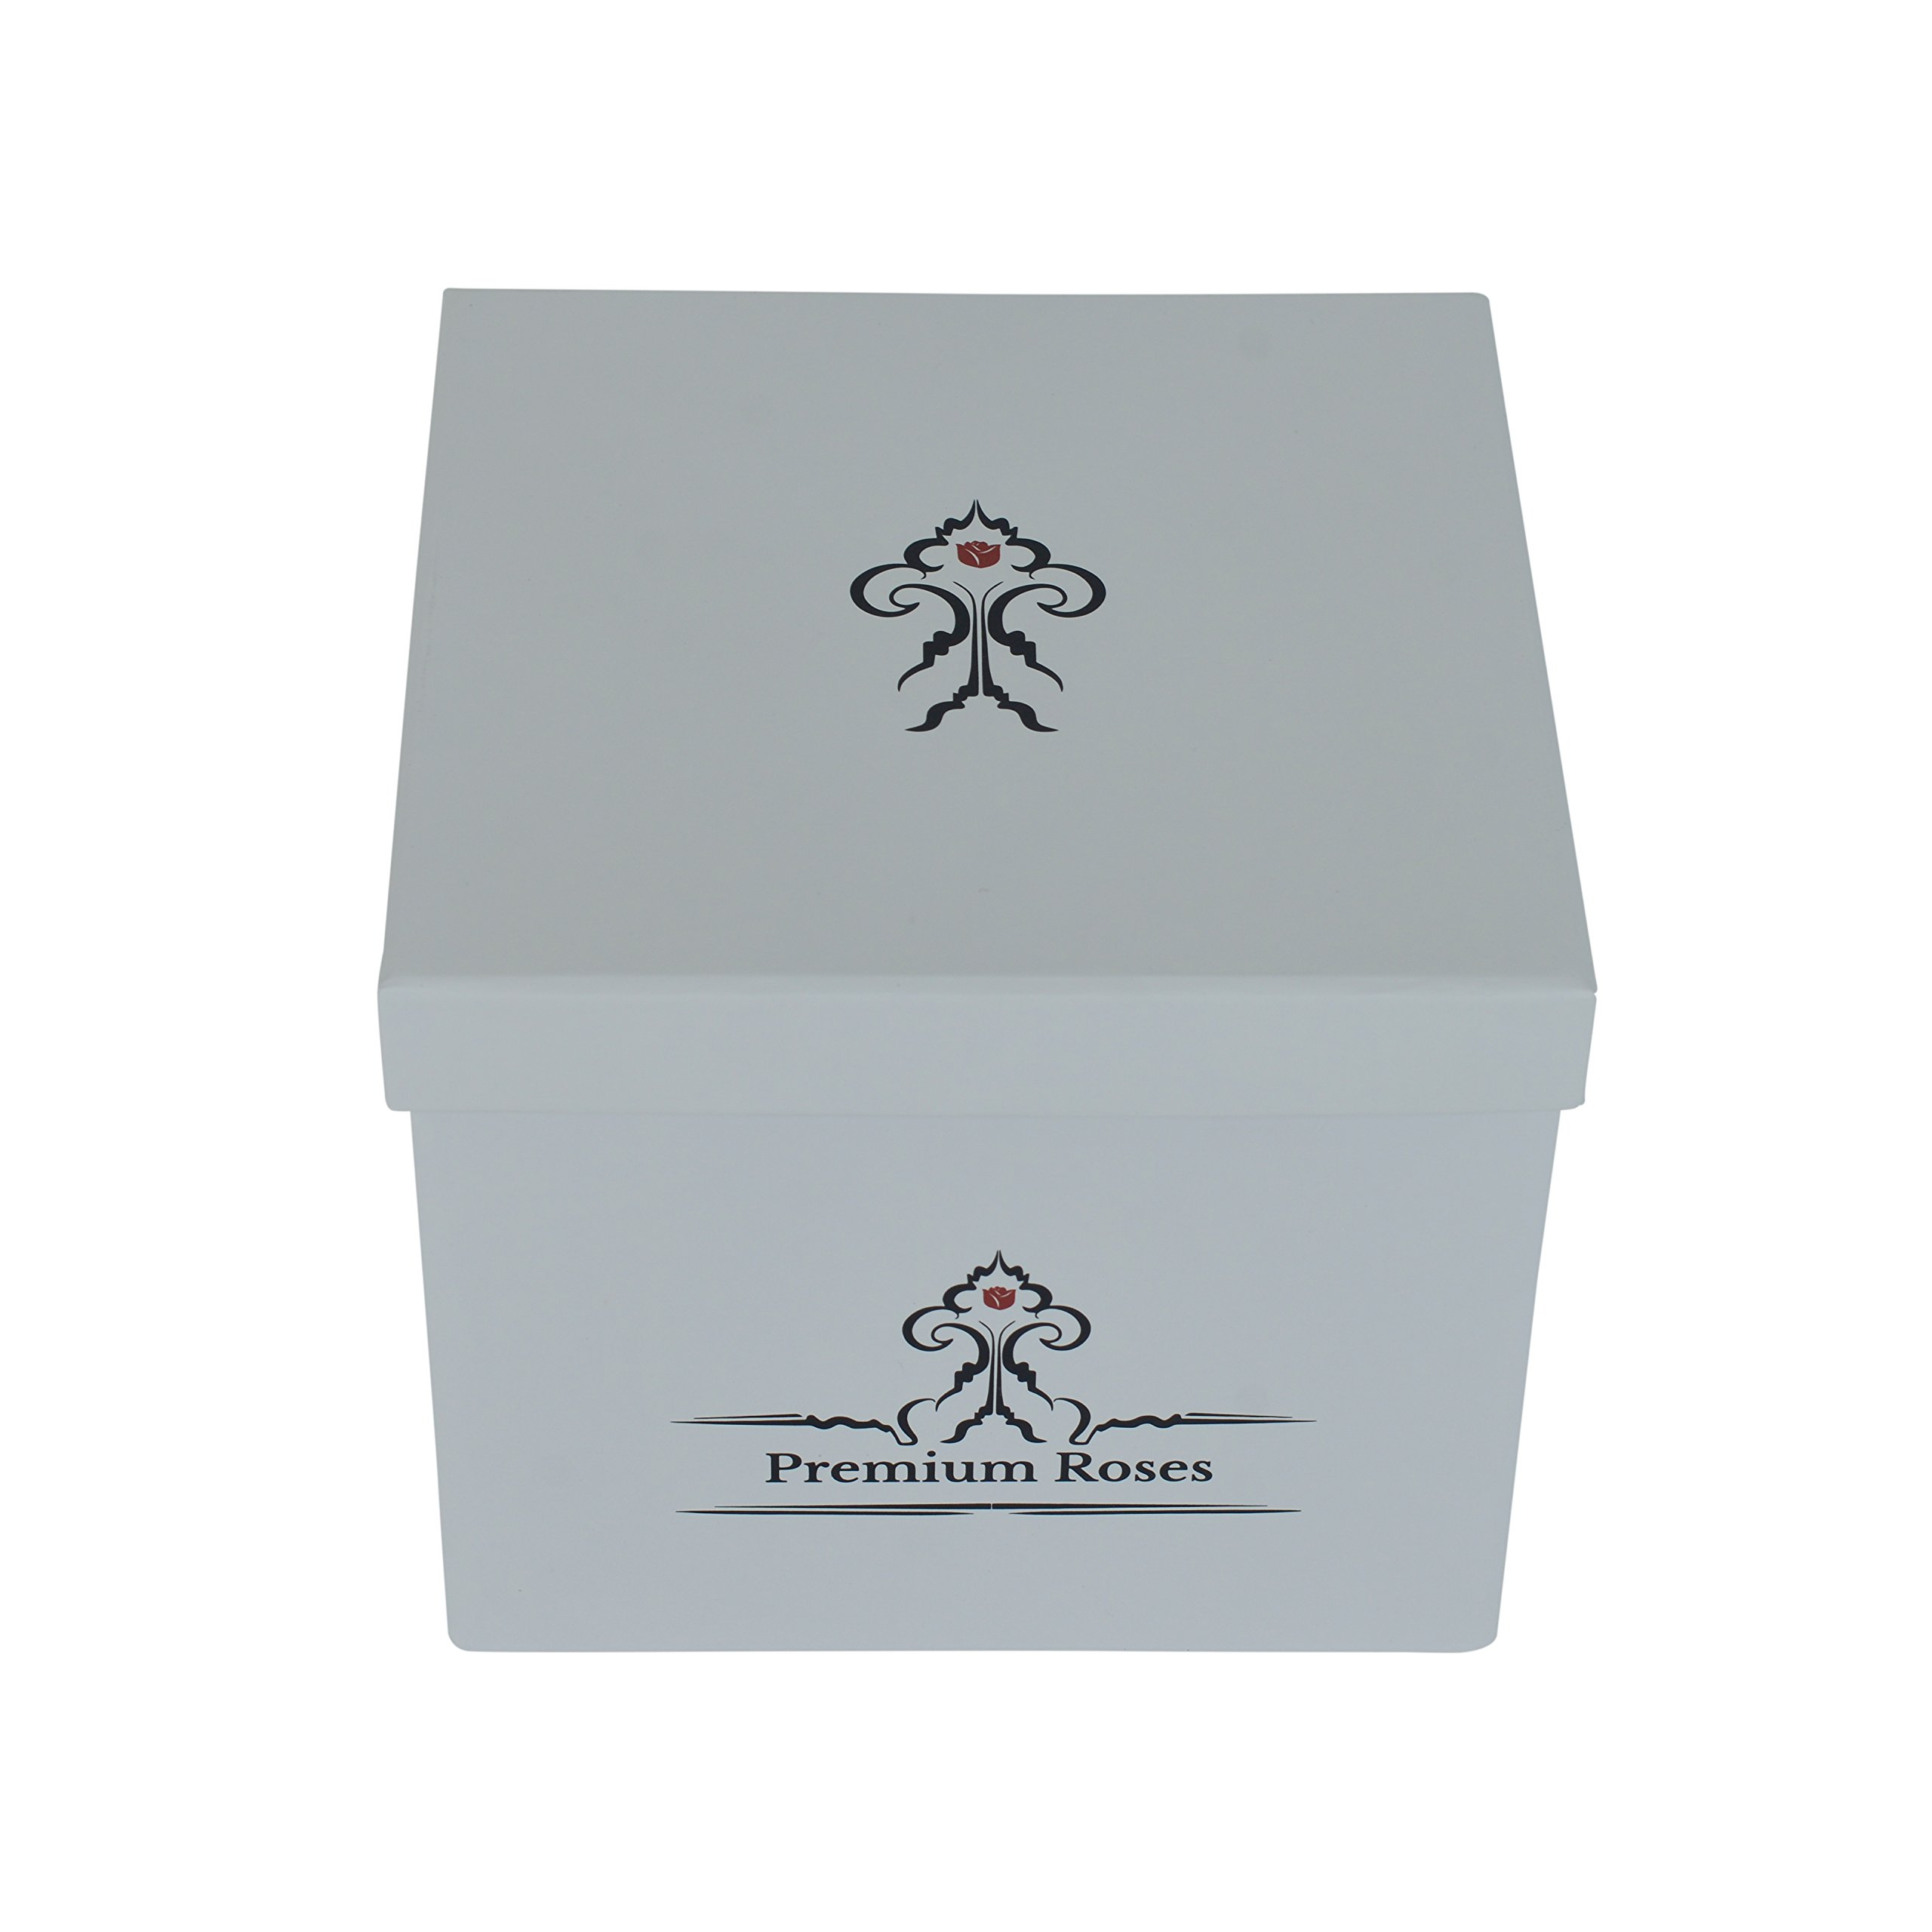 Premium Roses| Real Roses That Last a Year | Fresh Flowers| Roses in a Box (White Box, Small)